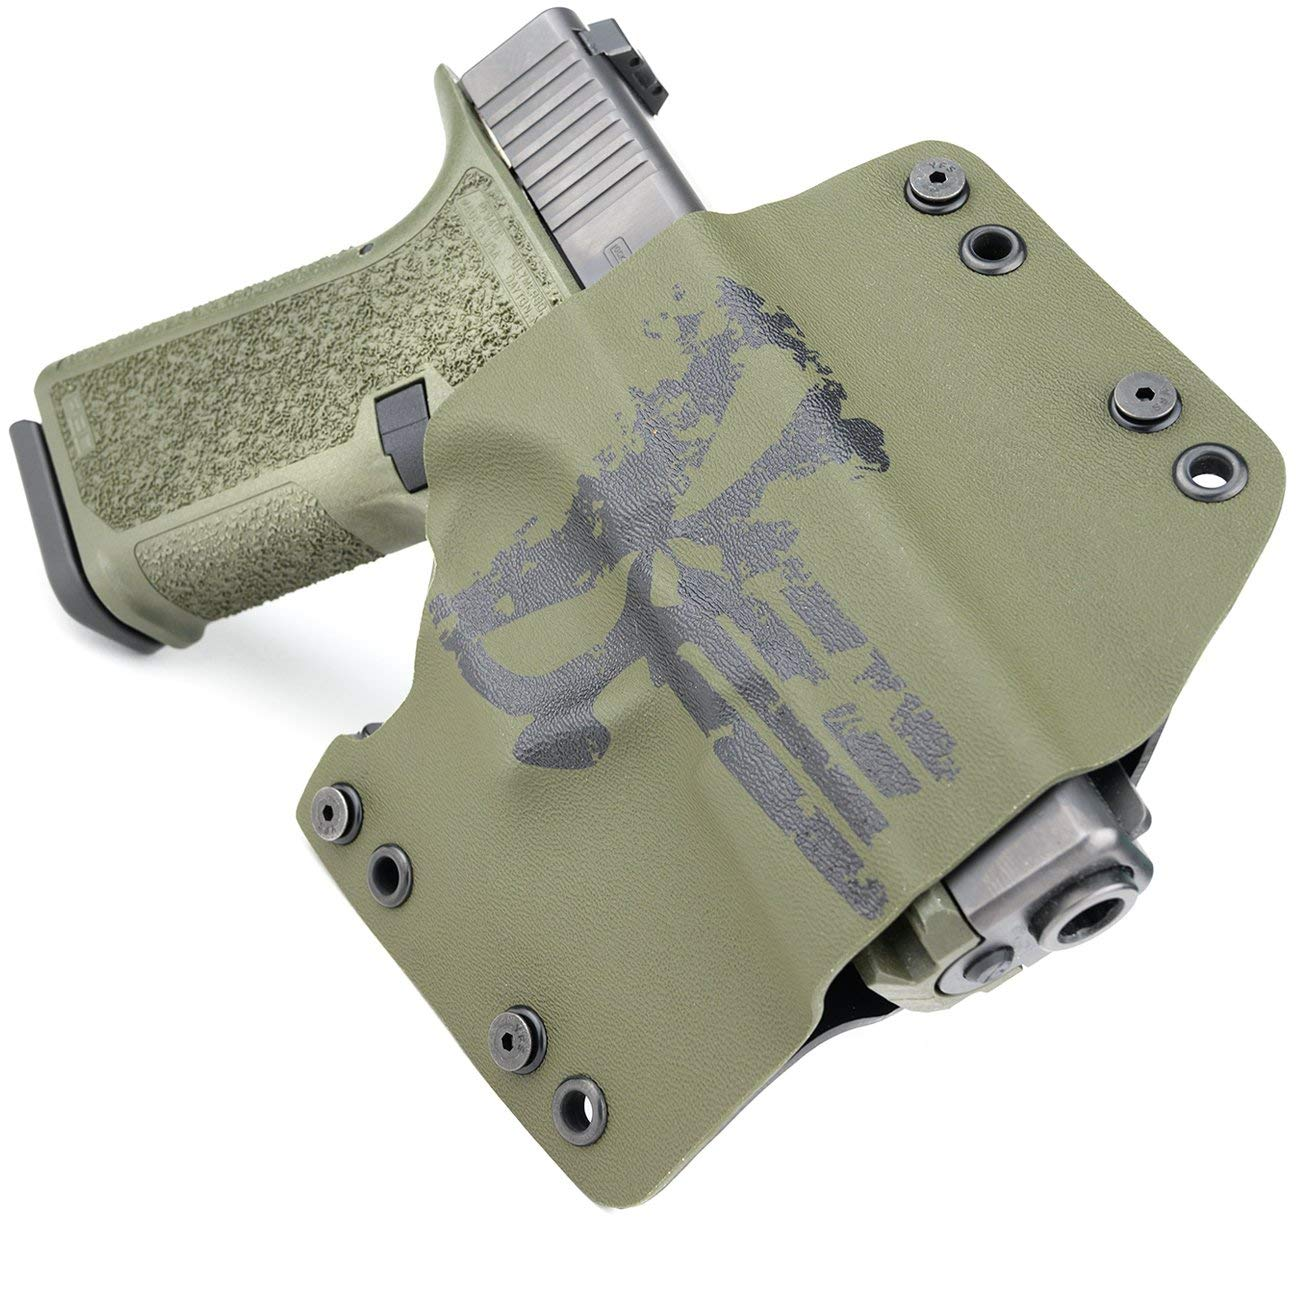 R/&R HOLSTERS OWB Kydex Holster For Glock